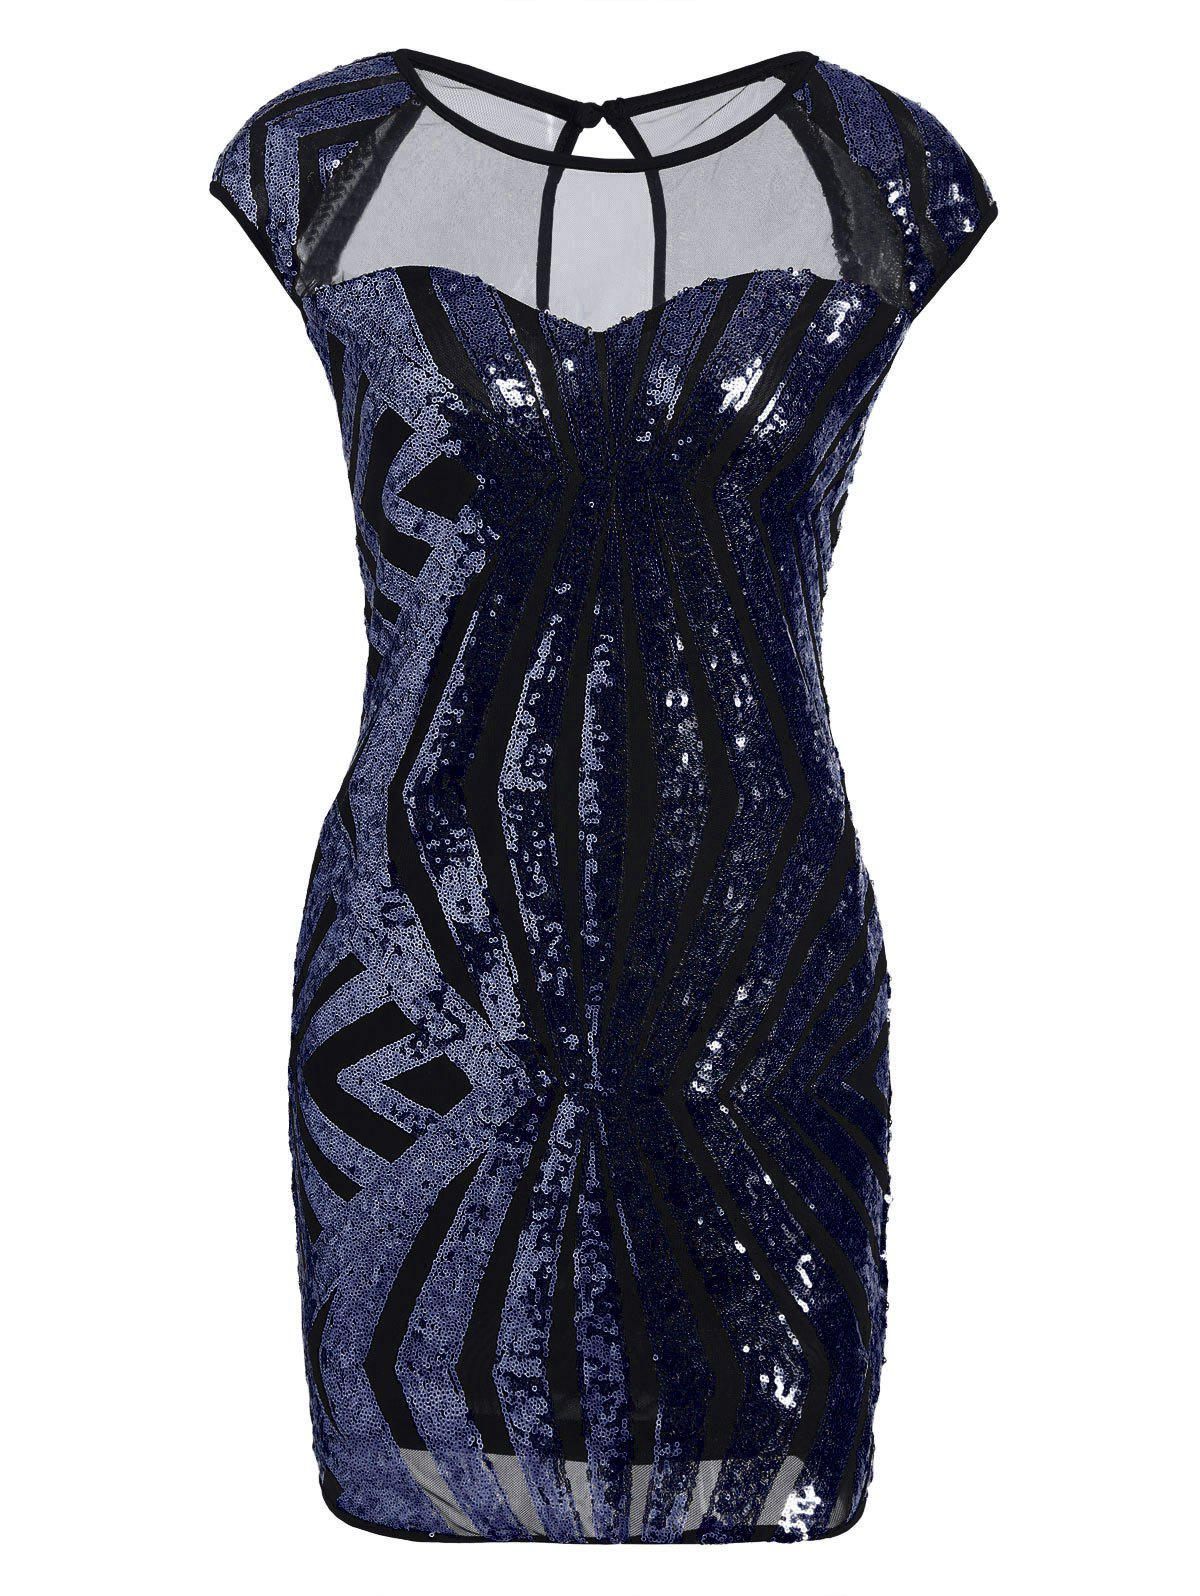 Mesh Insert Sequin Bodycon Club Dress - BLUE S